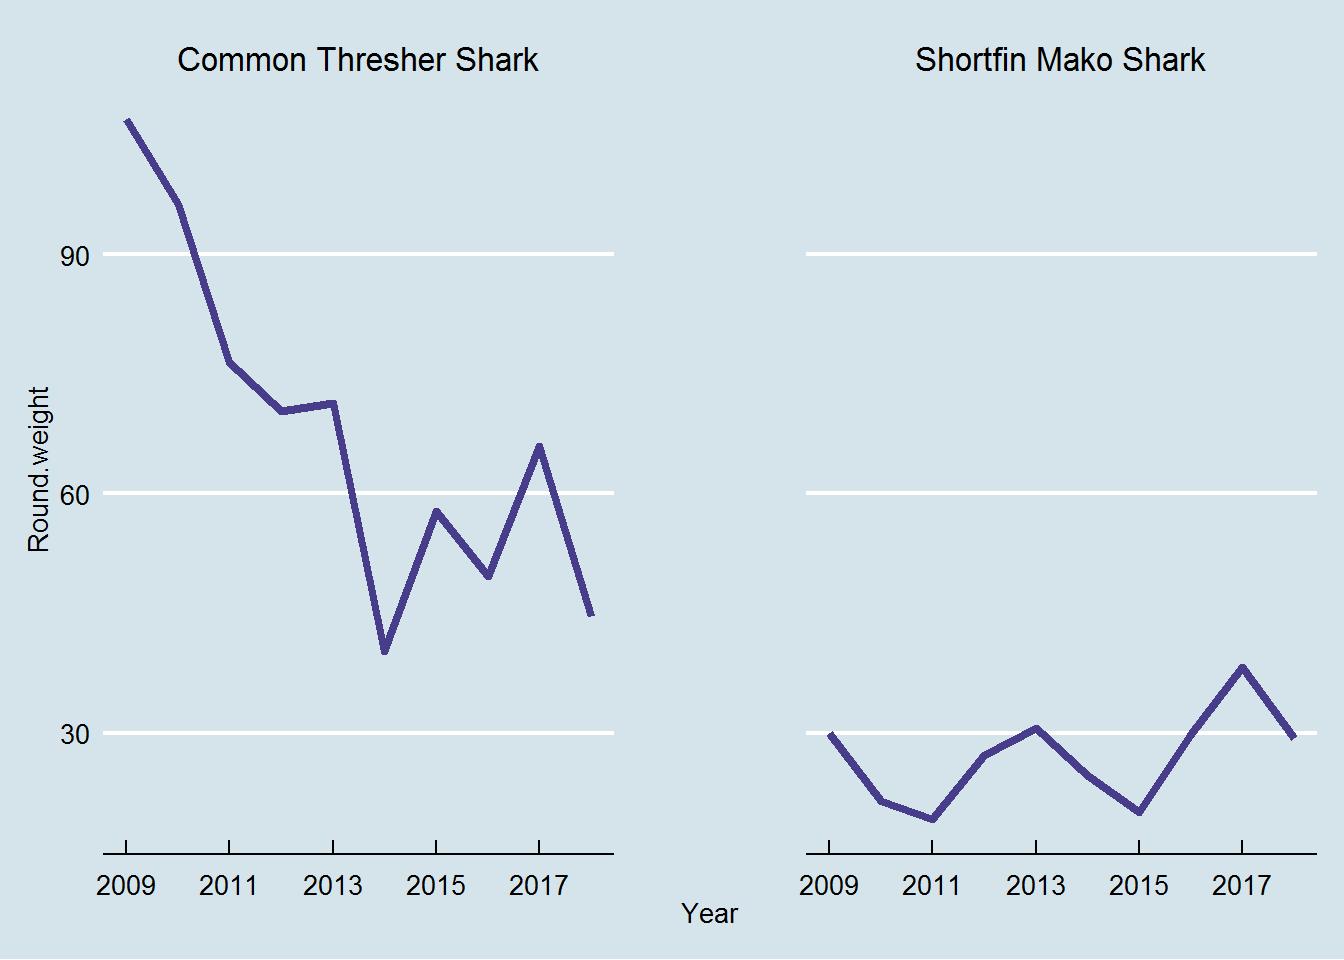 West coast landings of common thresher and shortfin mako sharks, last 10 years.